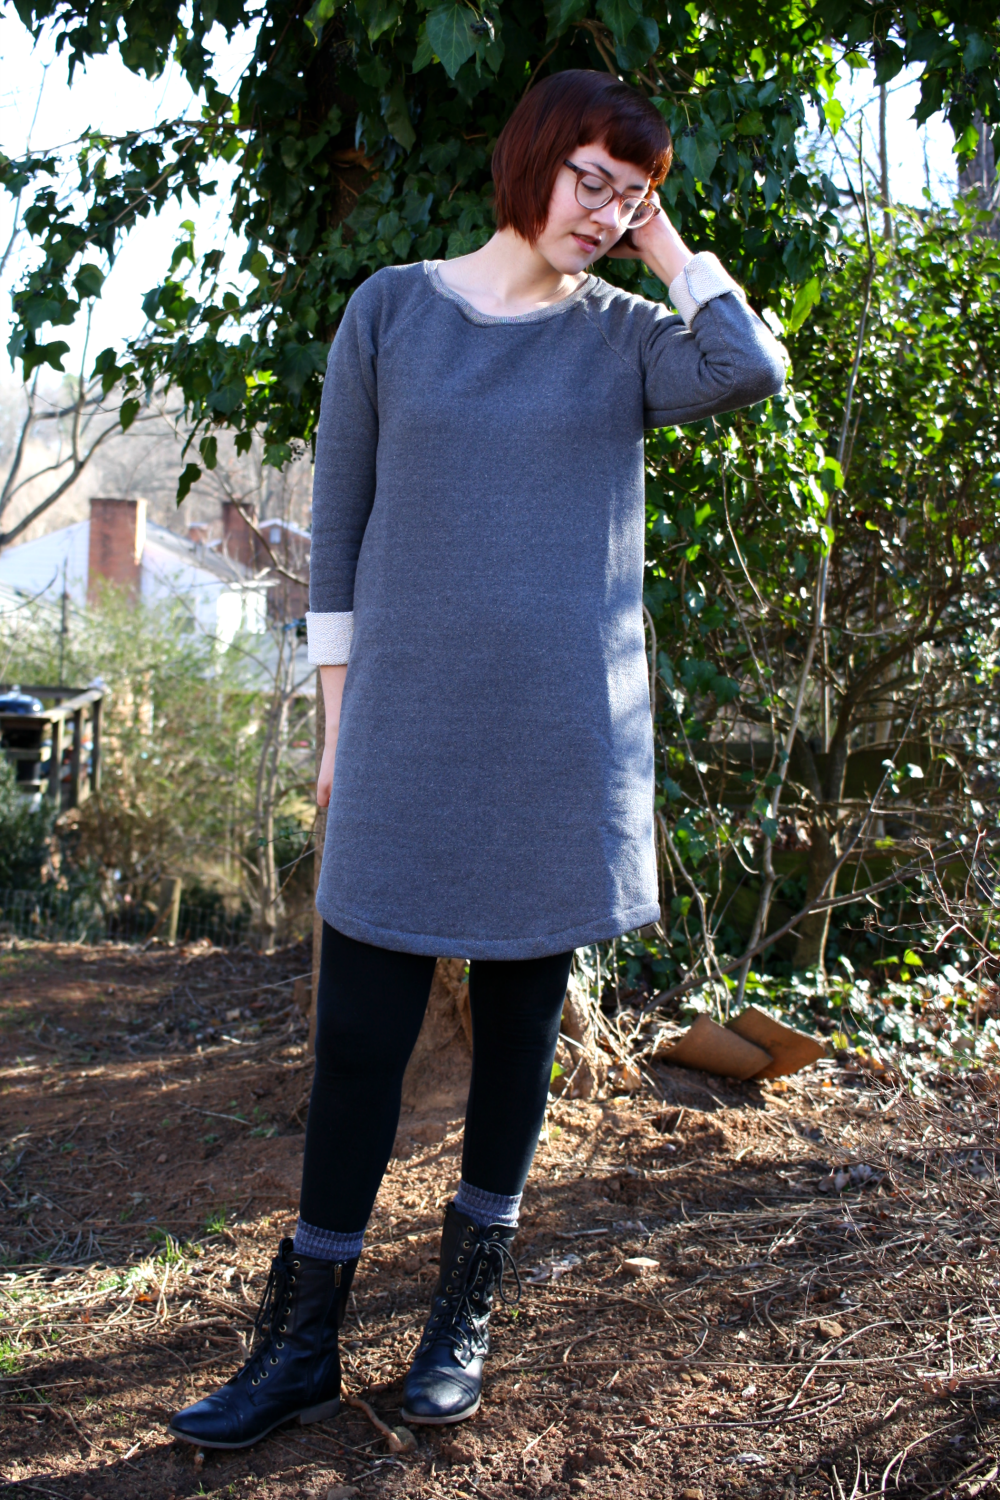 The American Made Kickstarter Dress - National Picnic Review